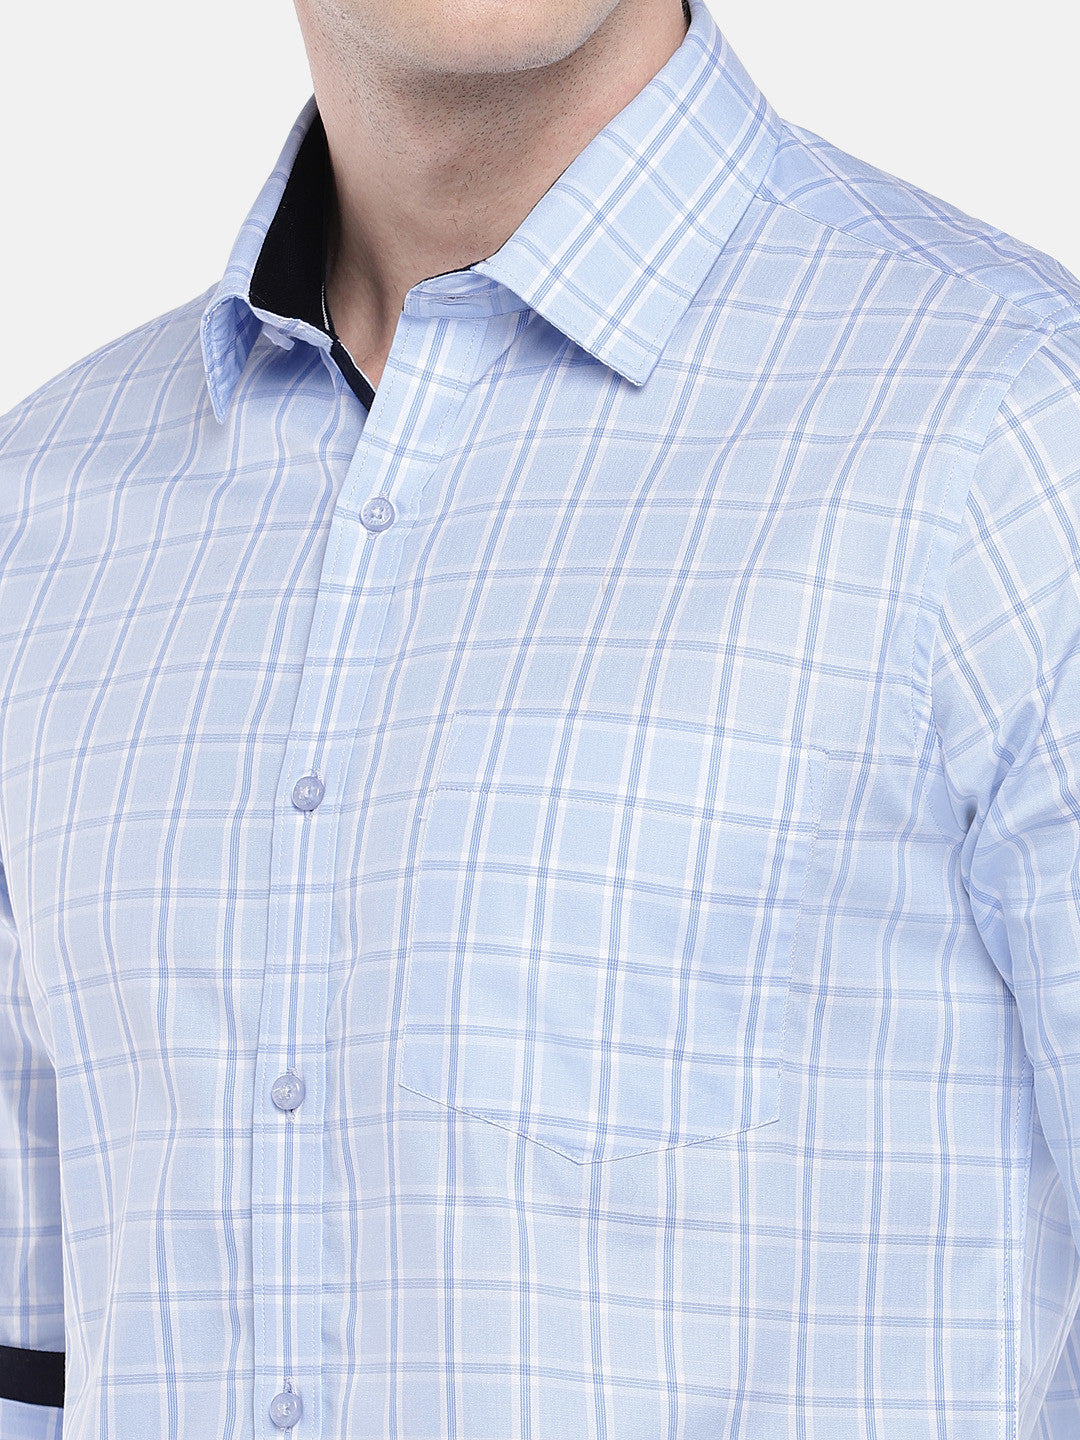 Blue Regular Fit Checked Casual Shirt-5